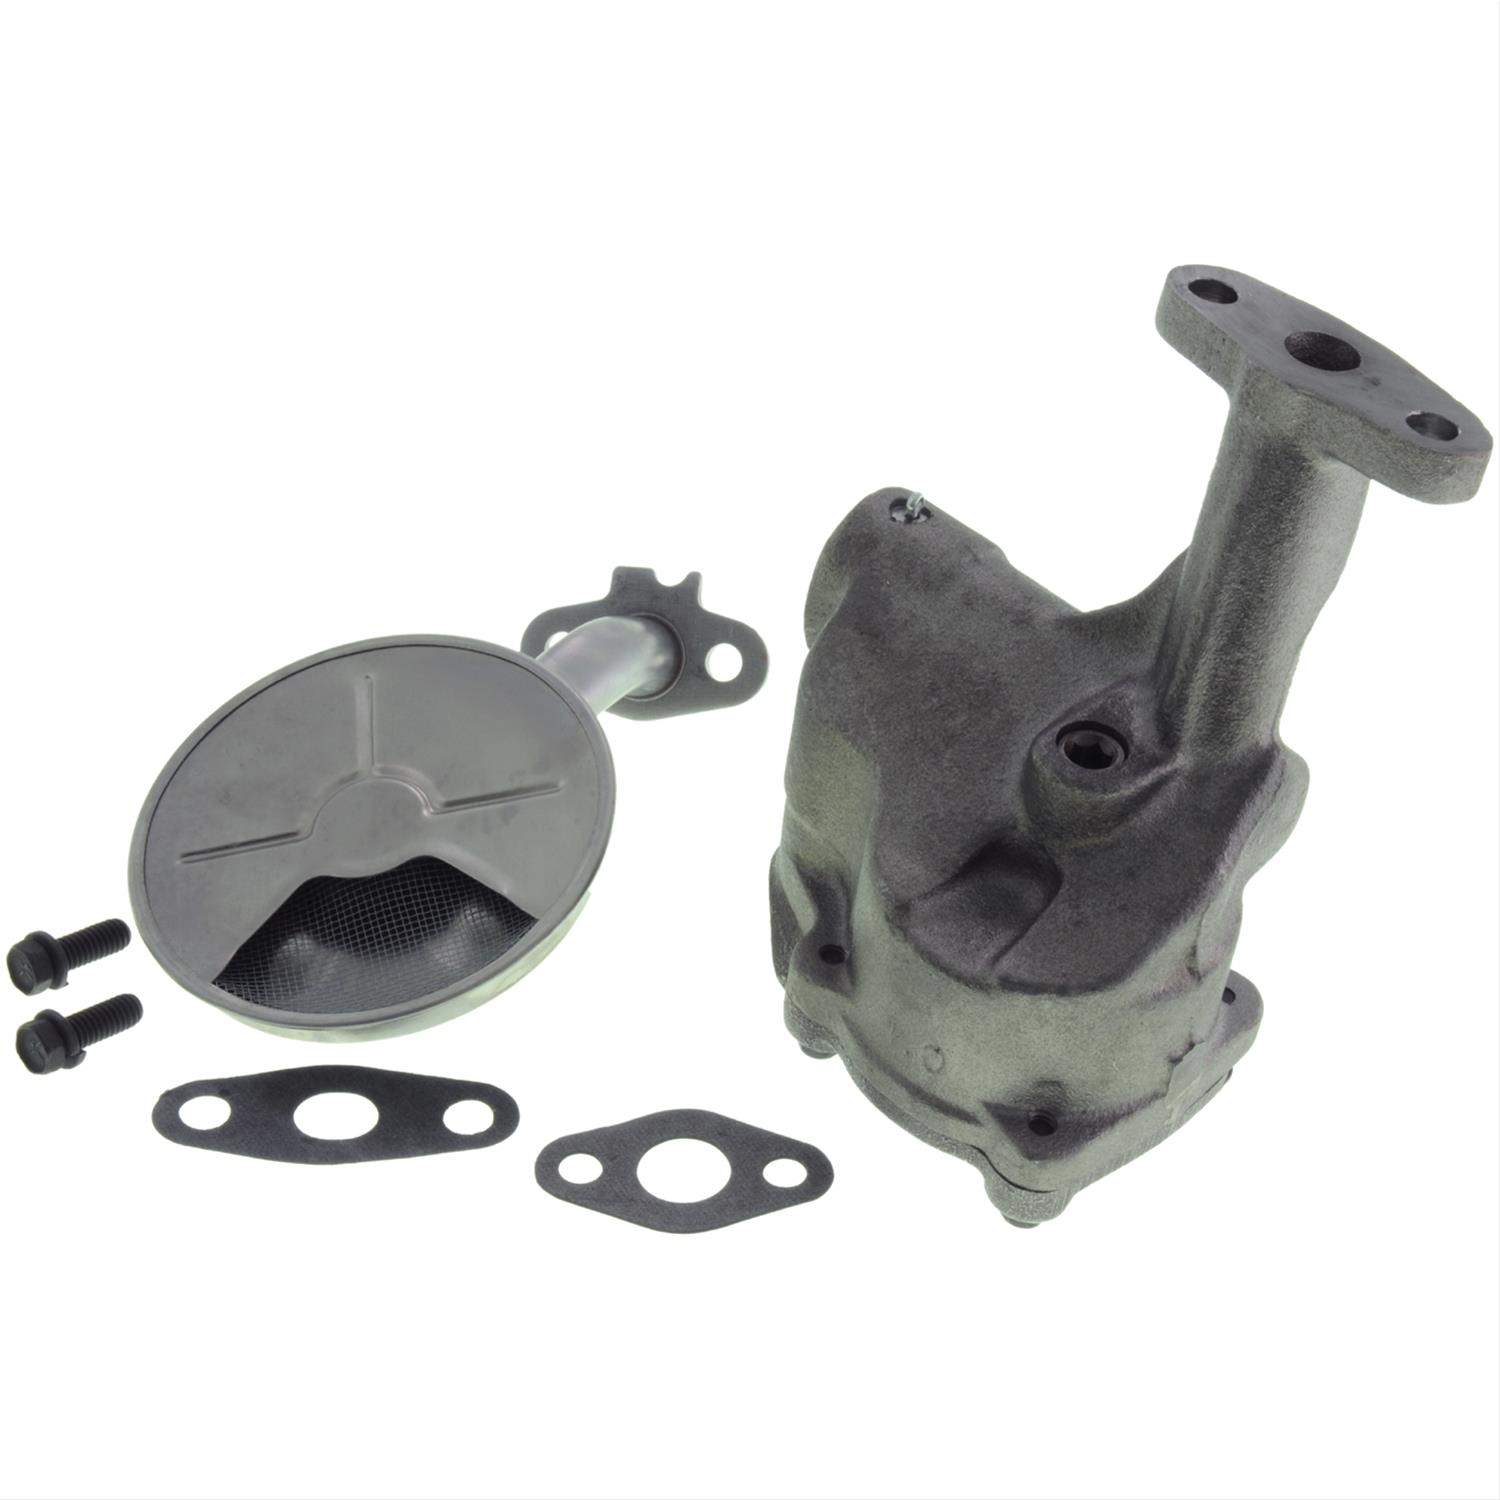 Melling High Volume Oil Pumps M 84bhv S Free Shipping On Orders 2012 Dodge Ram Pump Over 49 At Summit Racing